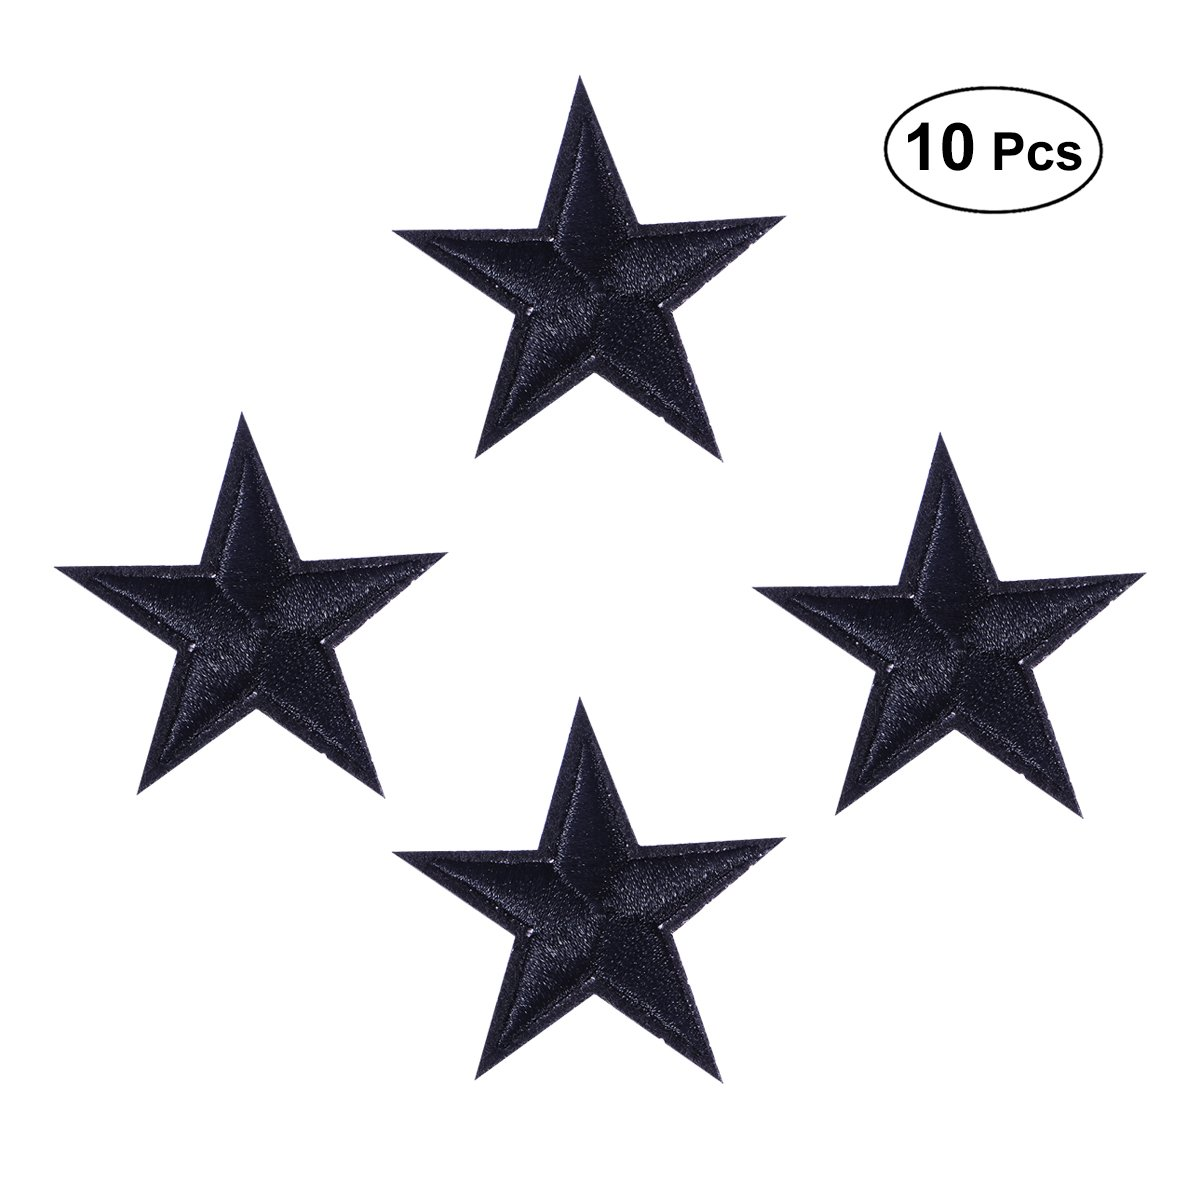 ULTNICE Star Embroidered Patches Iron On Applique Decorative Clothes Badge Black 10pcs